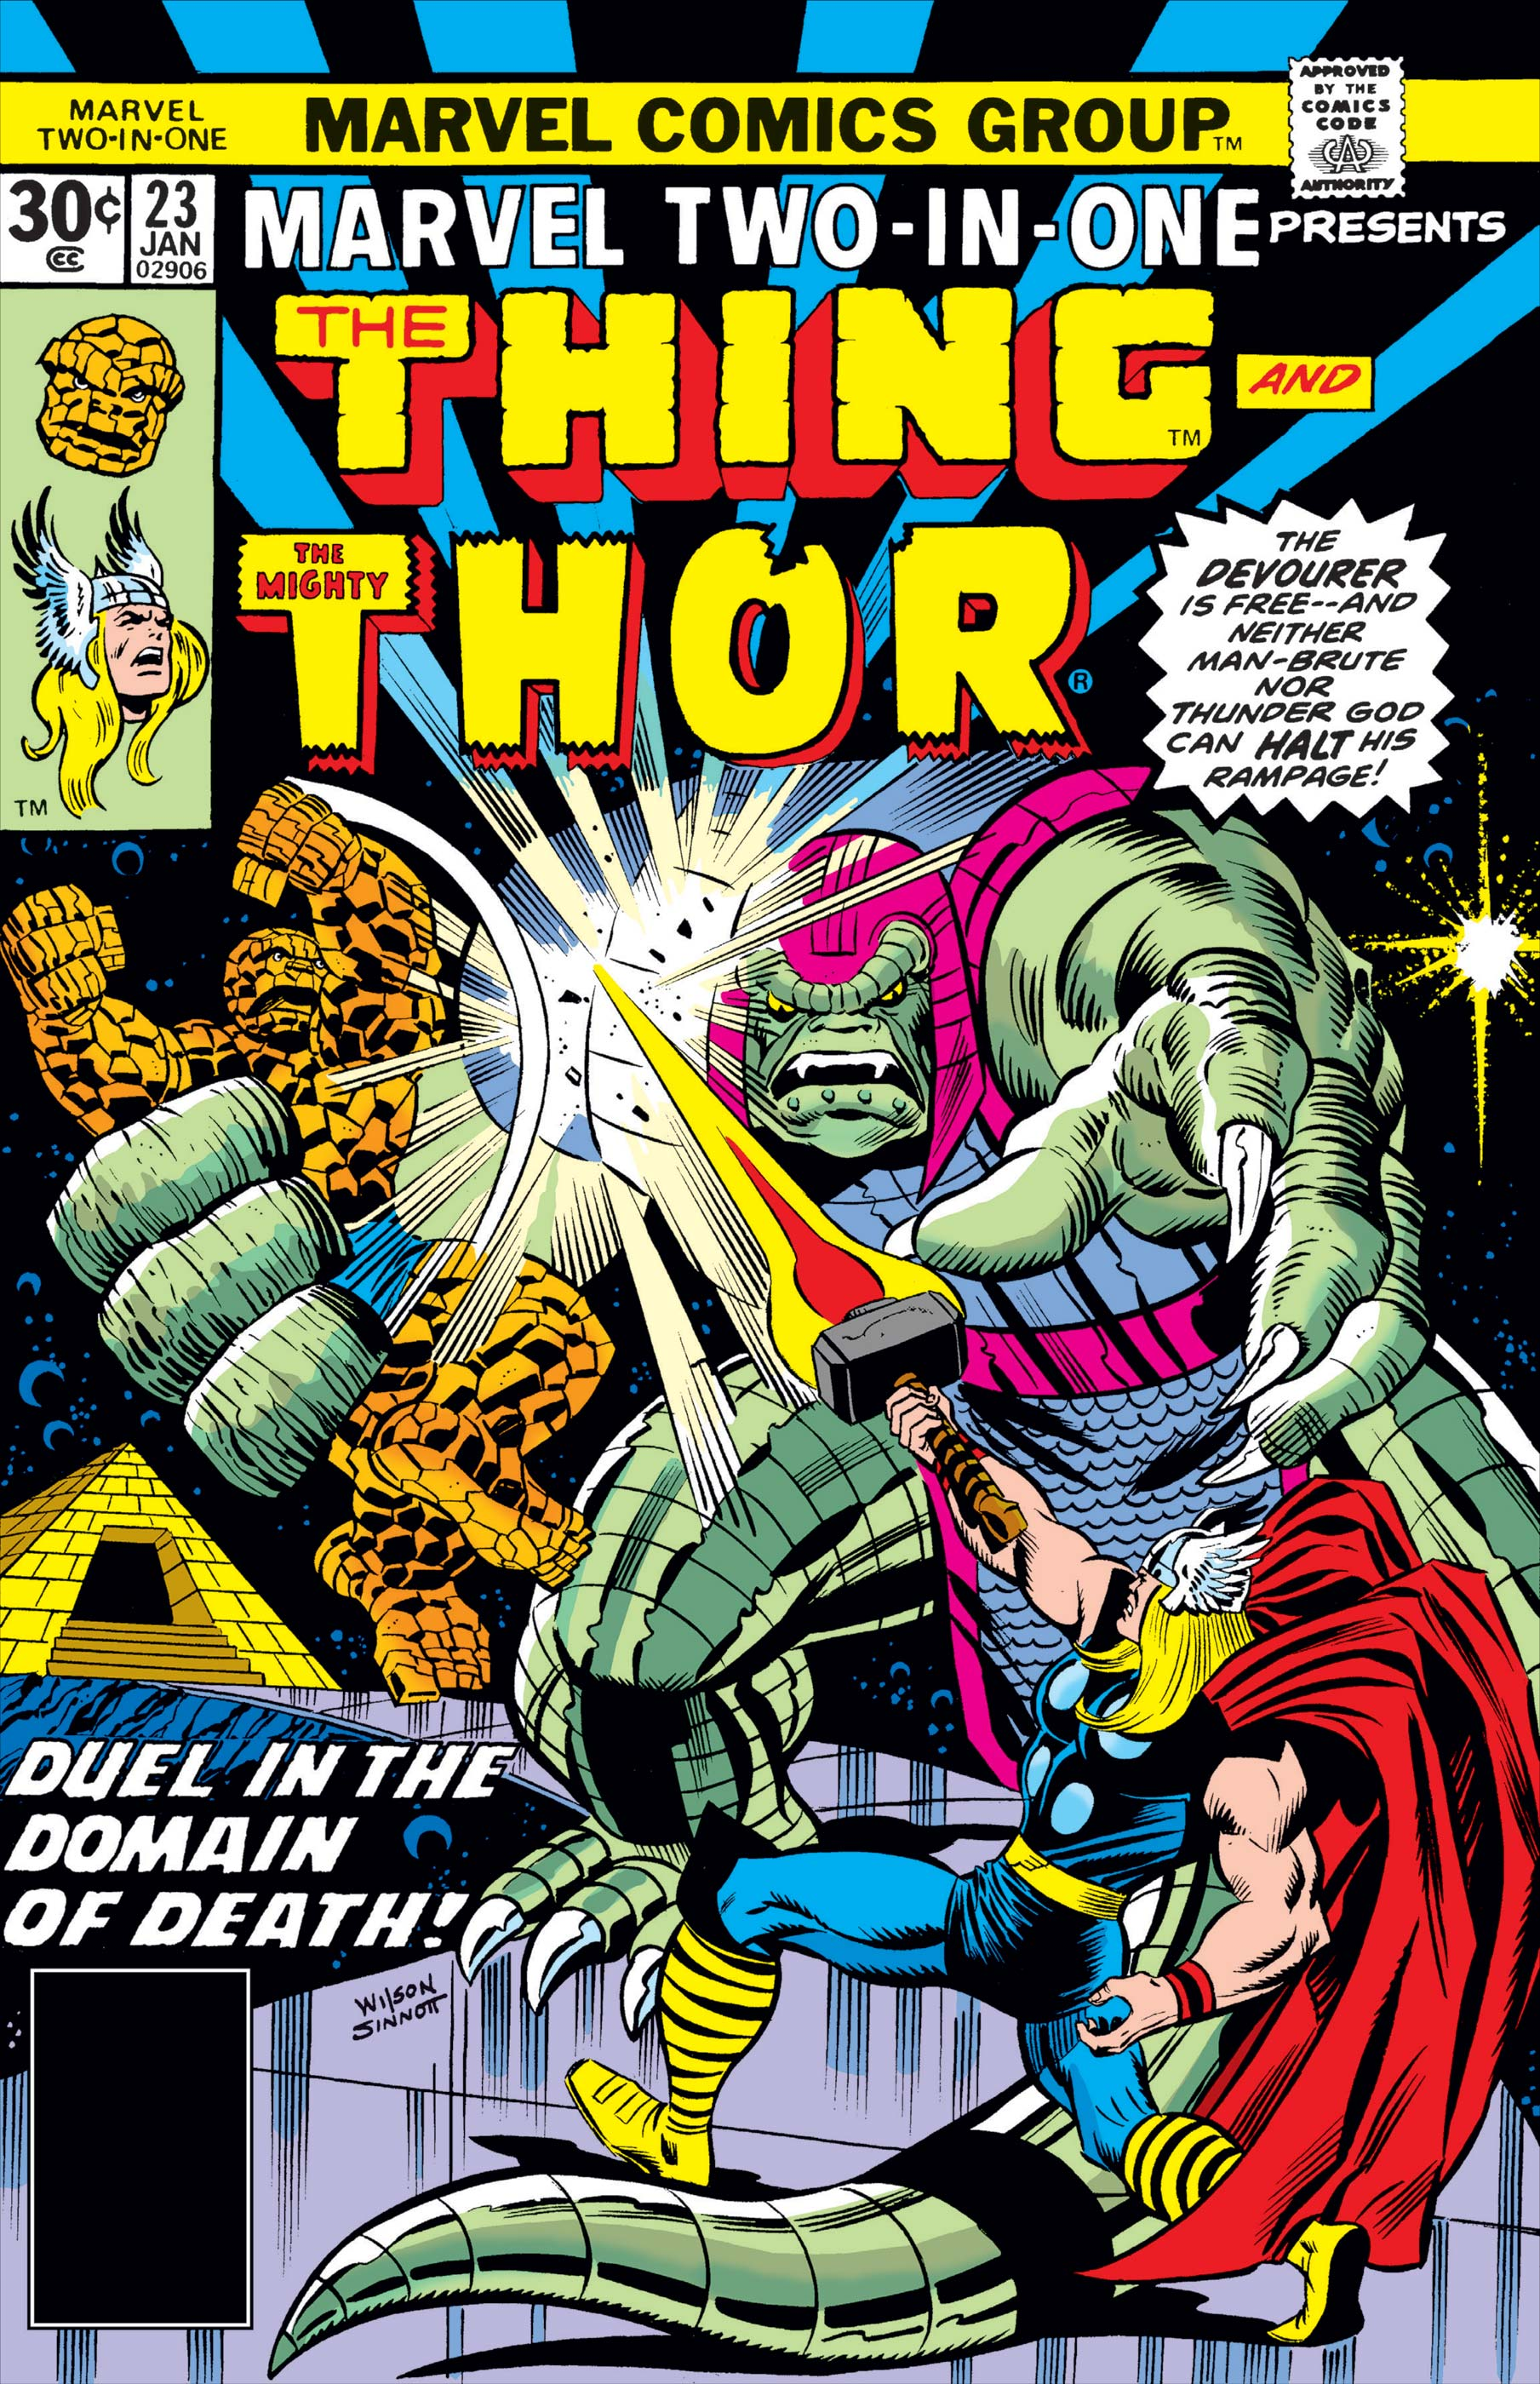 Marvel Two-in-One (1974) #23